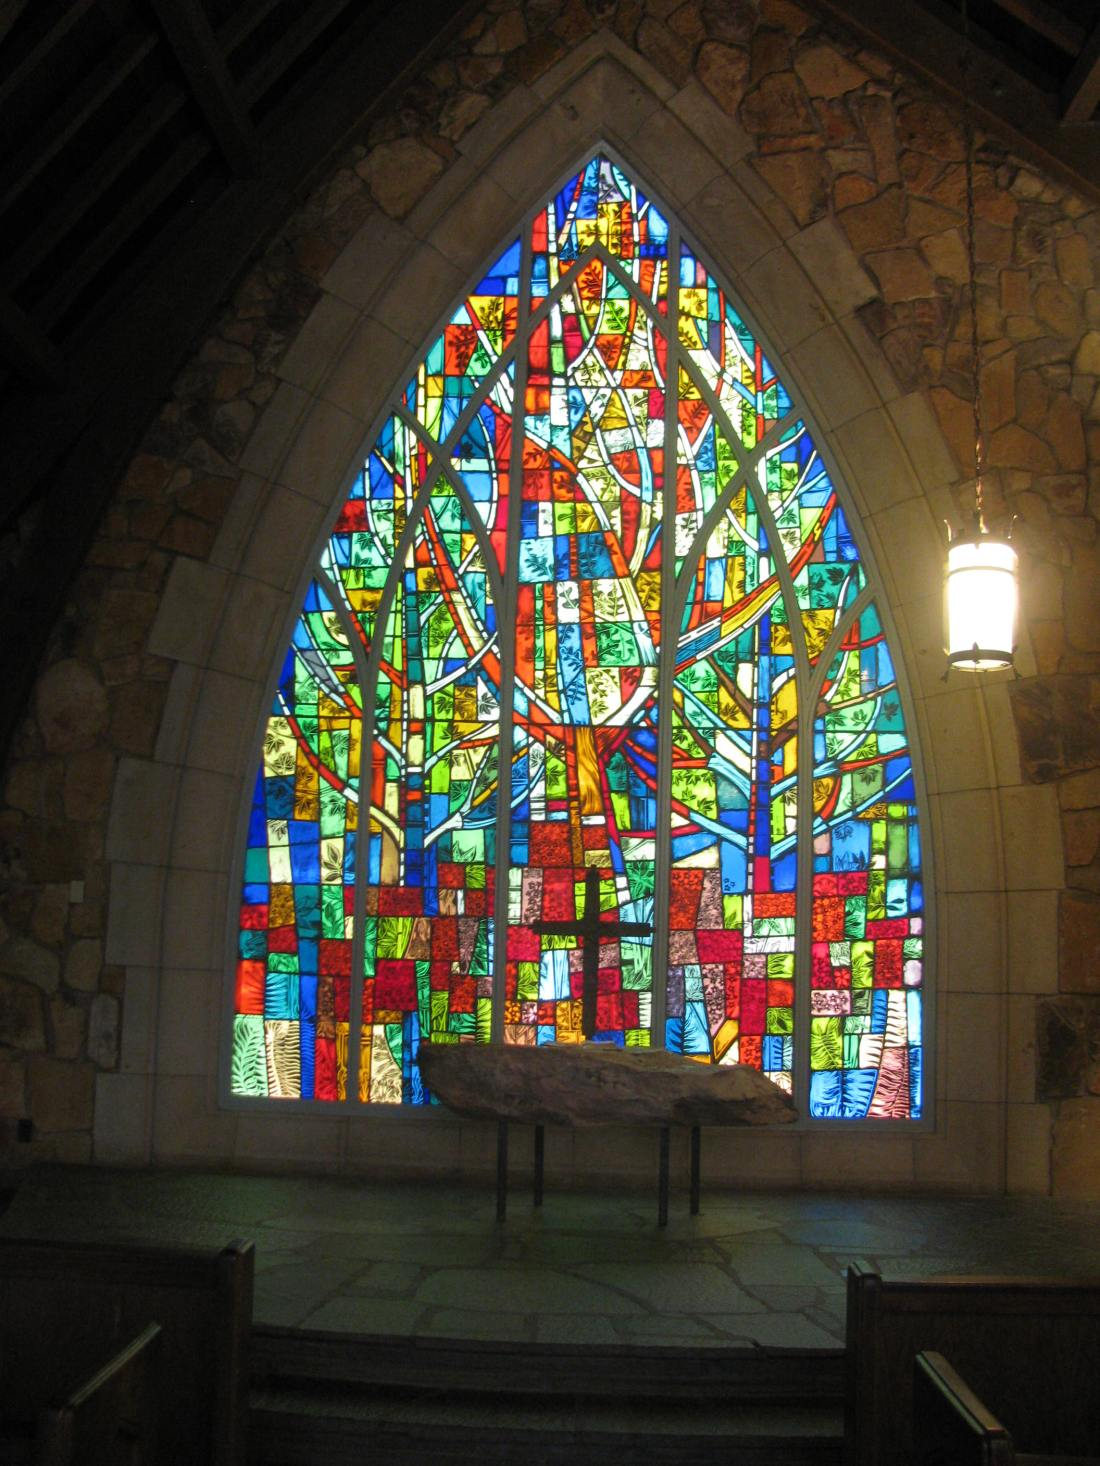 Stained glass image from the opposite end of the chapel.